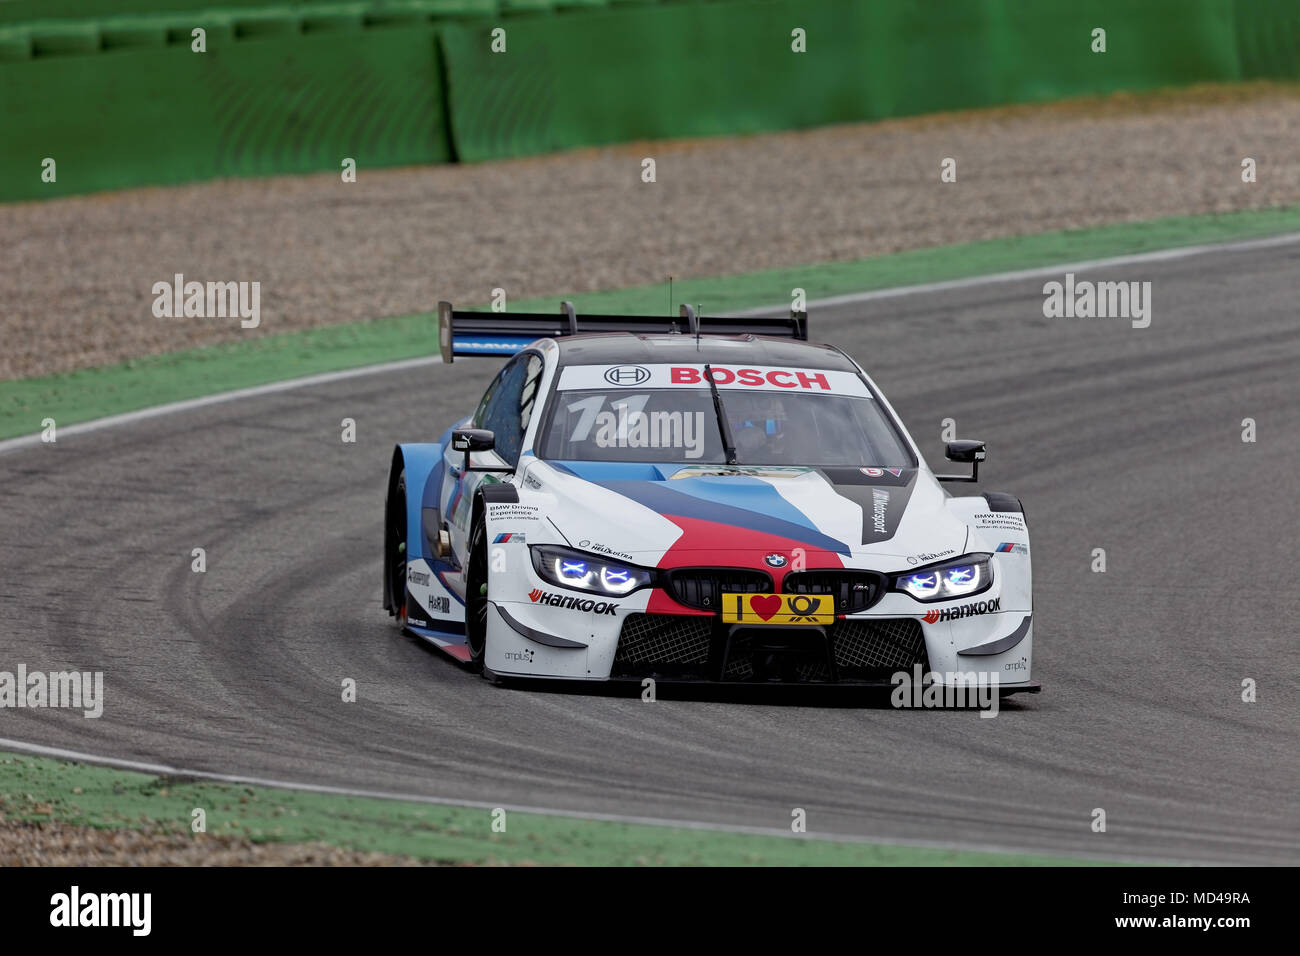 marco wittmann ger bmw m4 dtm 2018 tests hockenheim. Black Bedroom Furniture Sets. Home Design Ideas